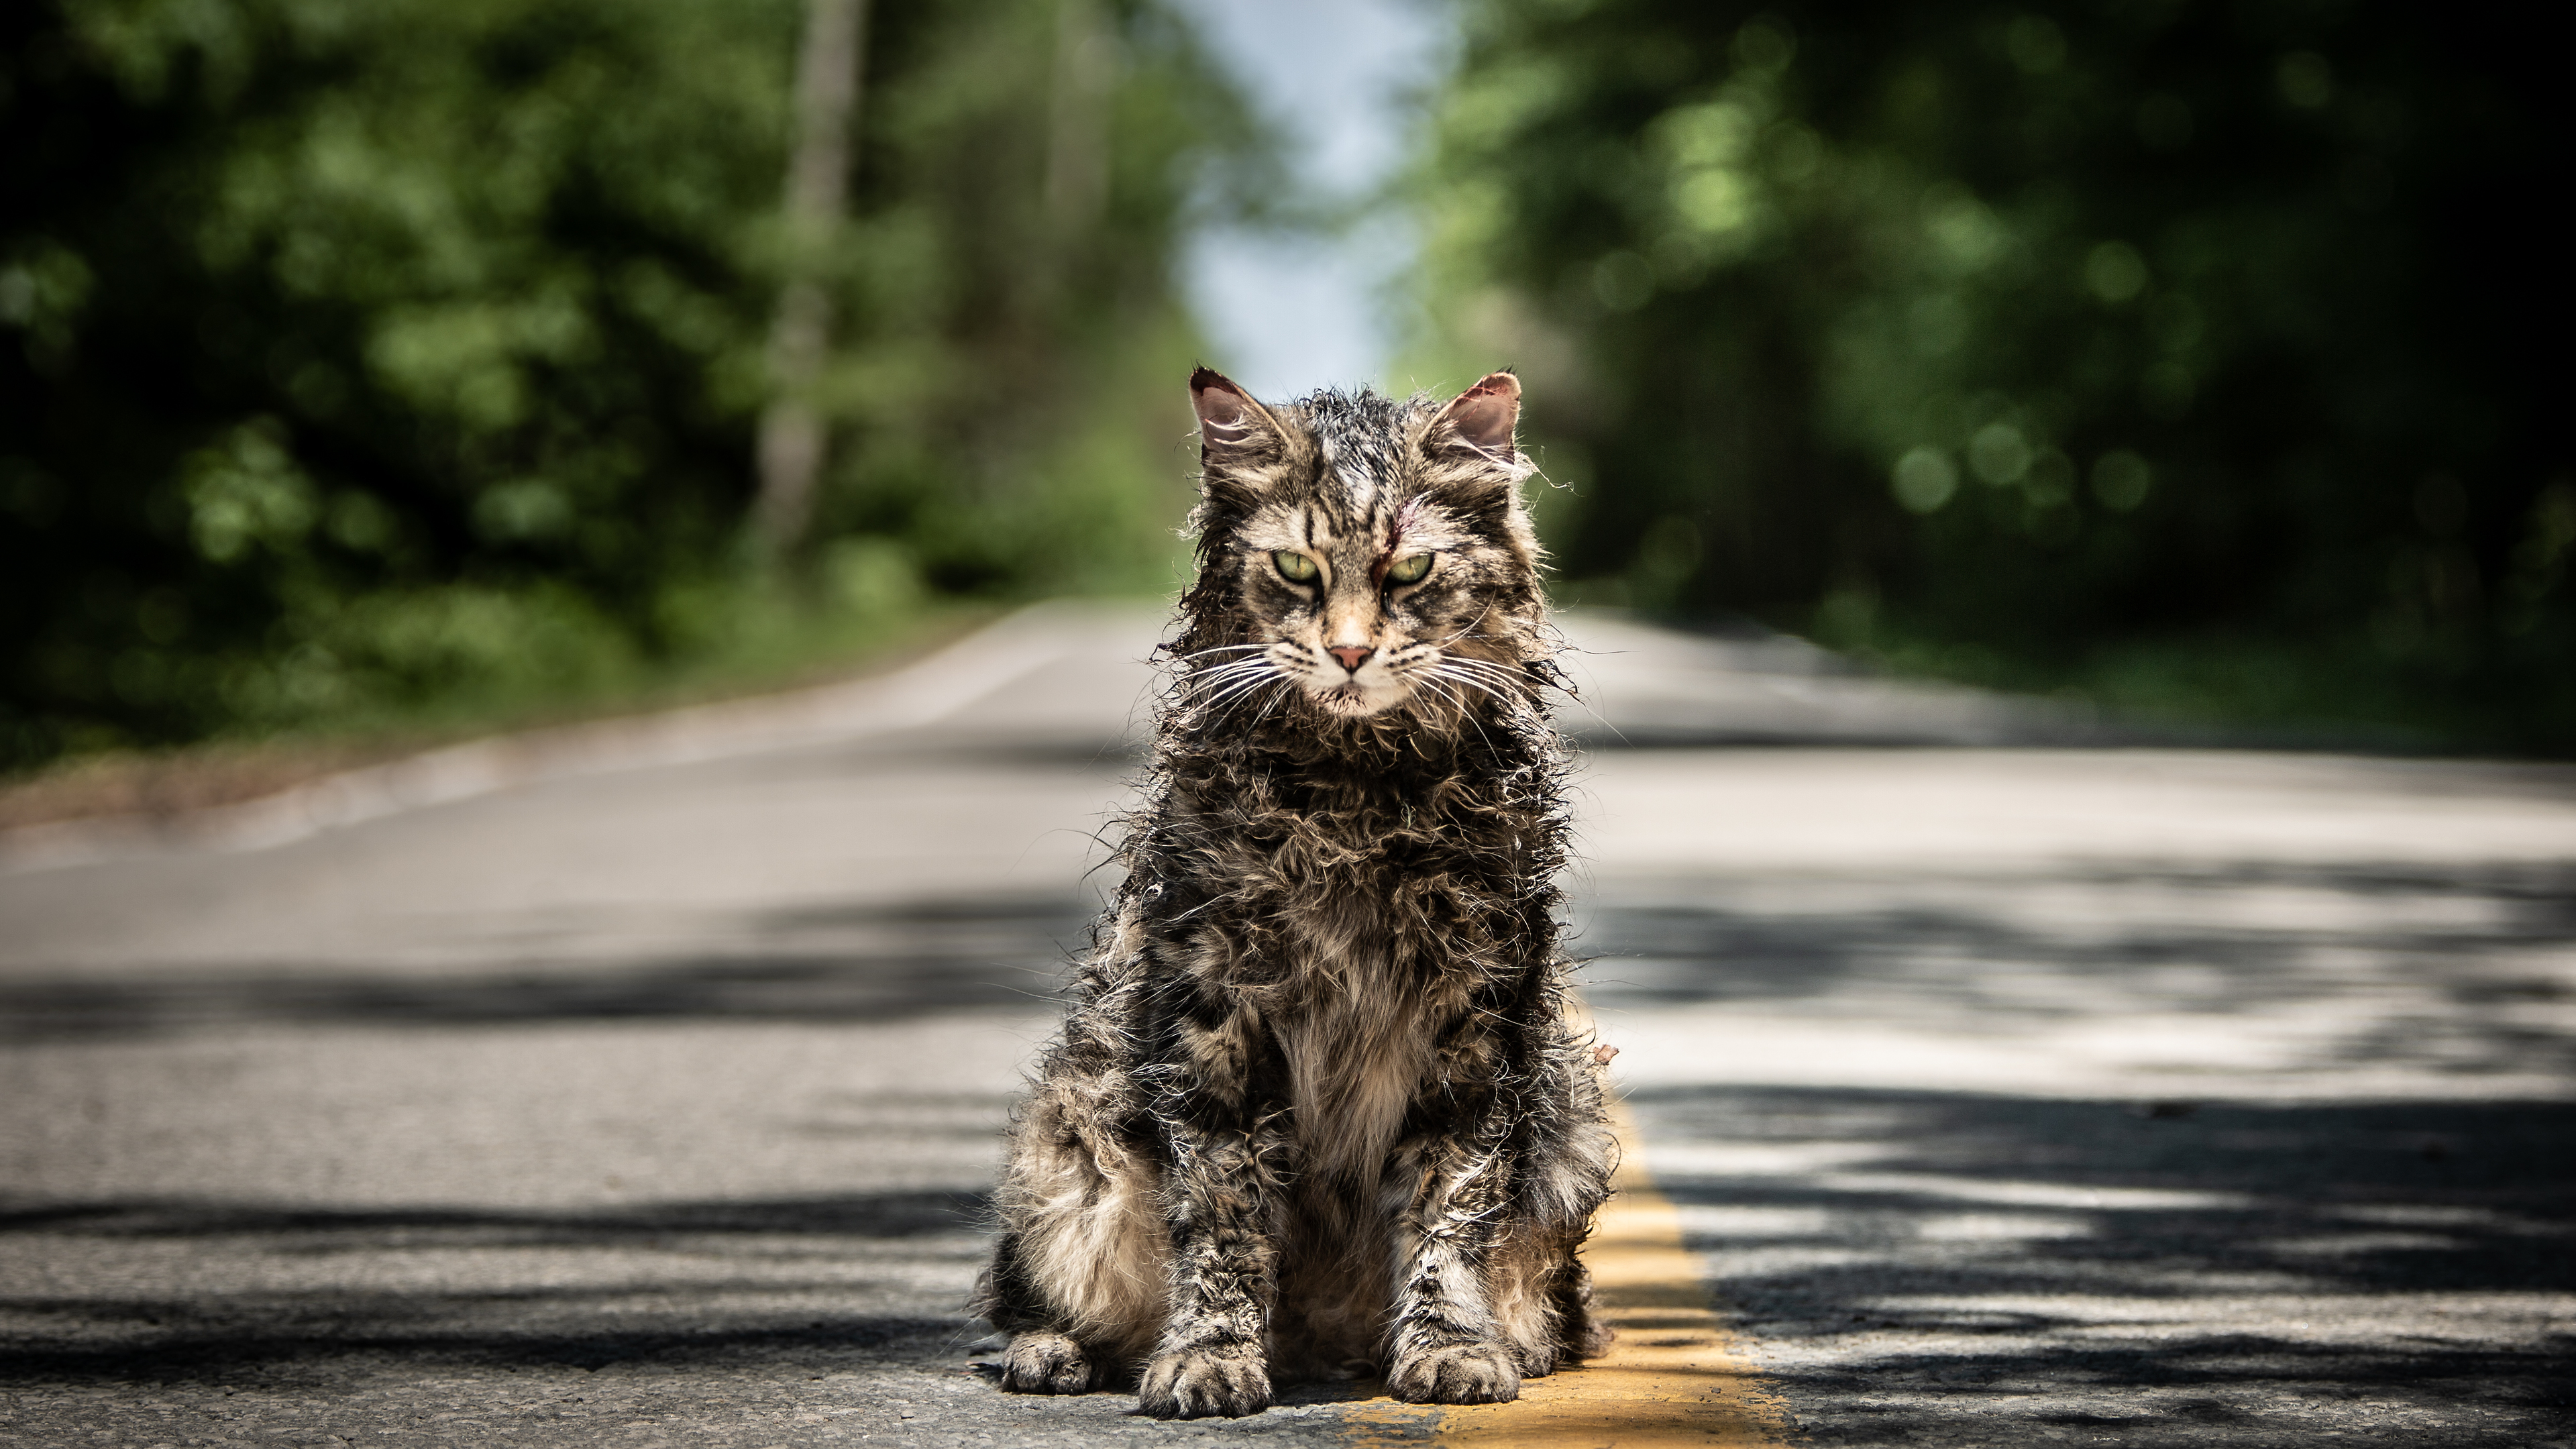 Wallpaper 4k Pet Sematary Movie 2019 2019 Movies Wallpapers 4k Wallpapers 5k Wallpapers Hd Wallpapers Movies Wallpapers Pet Sematary Wallpapers